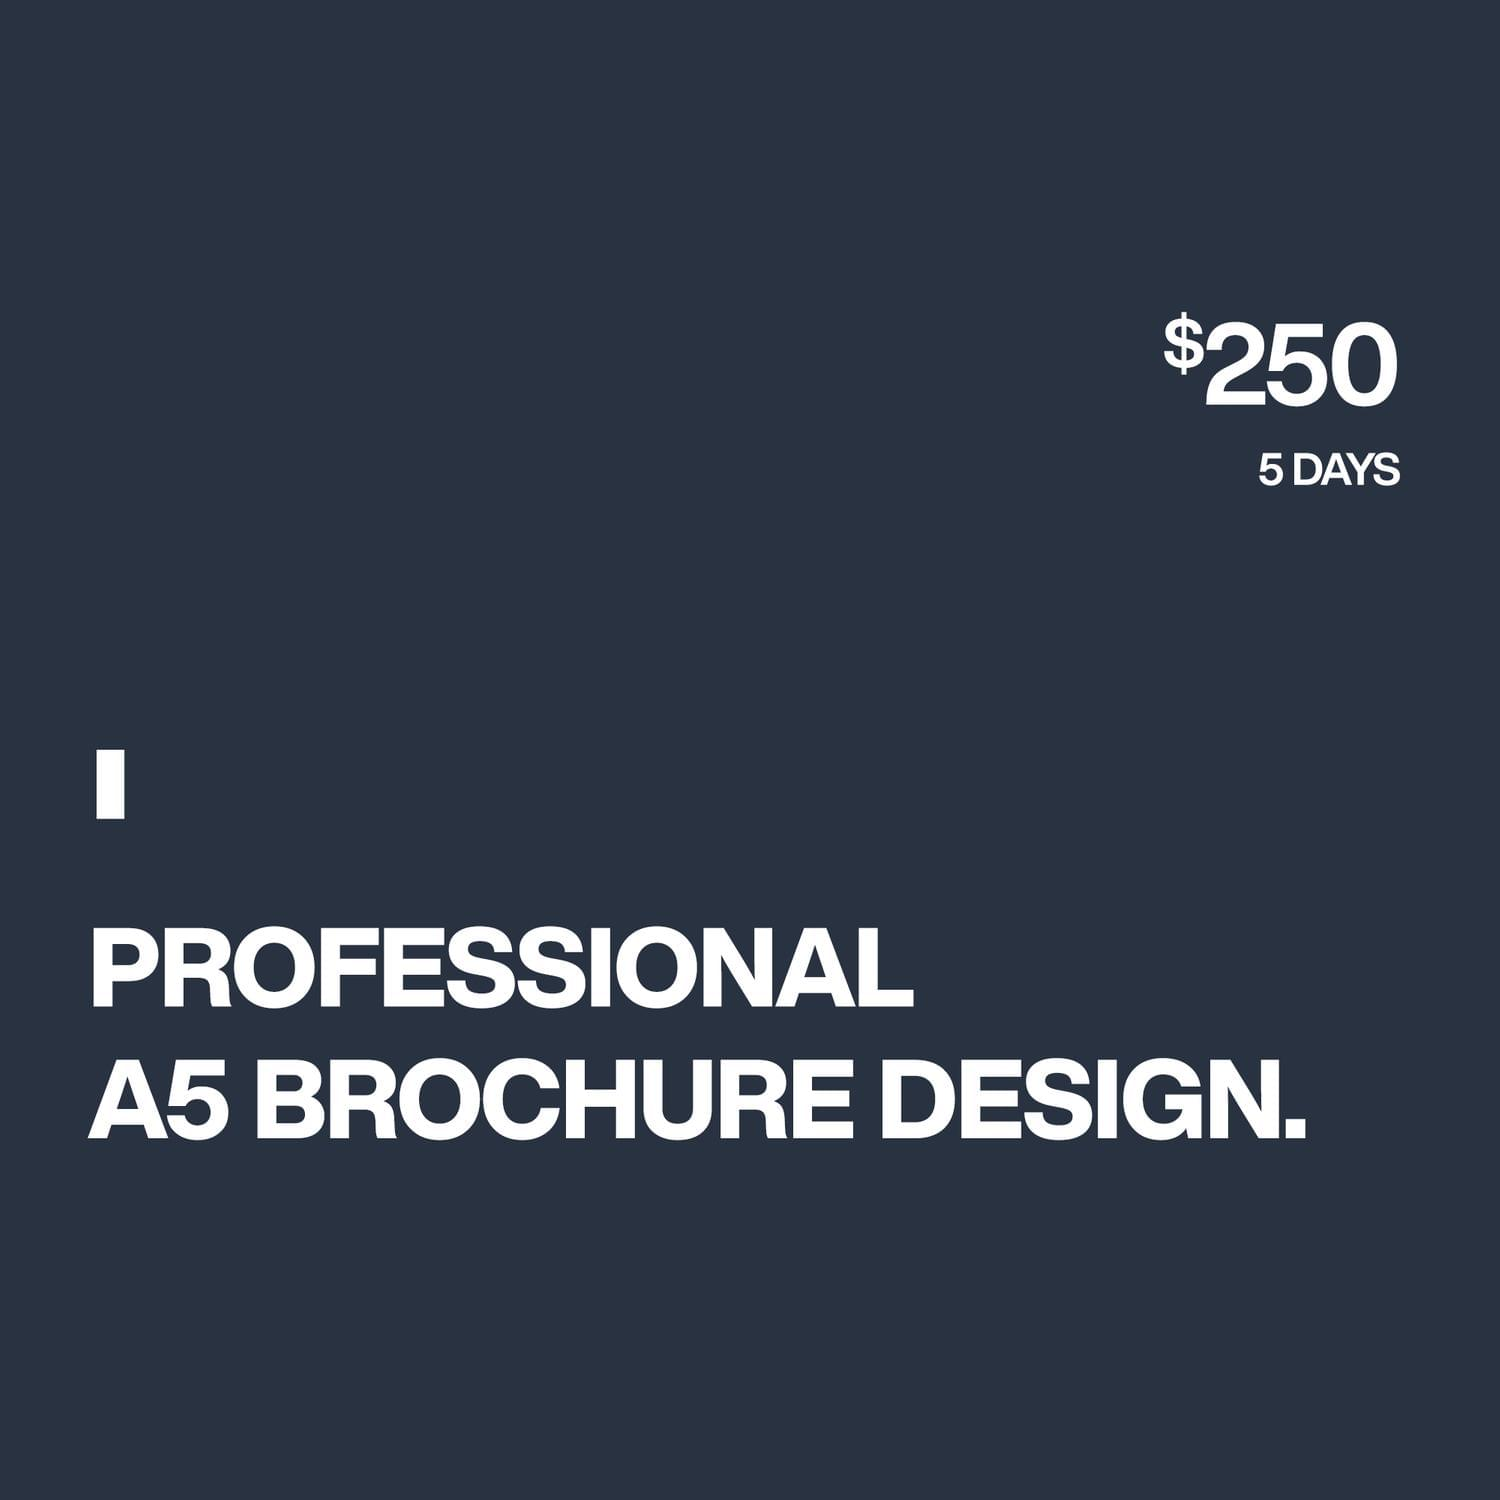 Professional A5 Brochure Design by Unicogfx - 119065